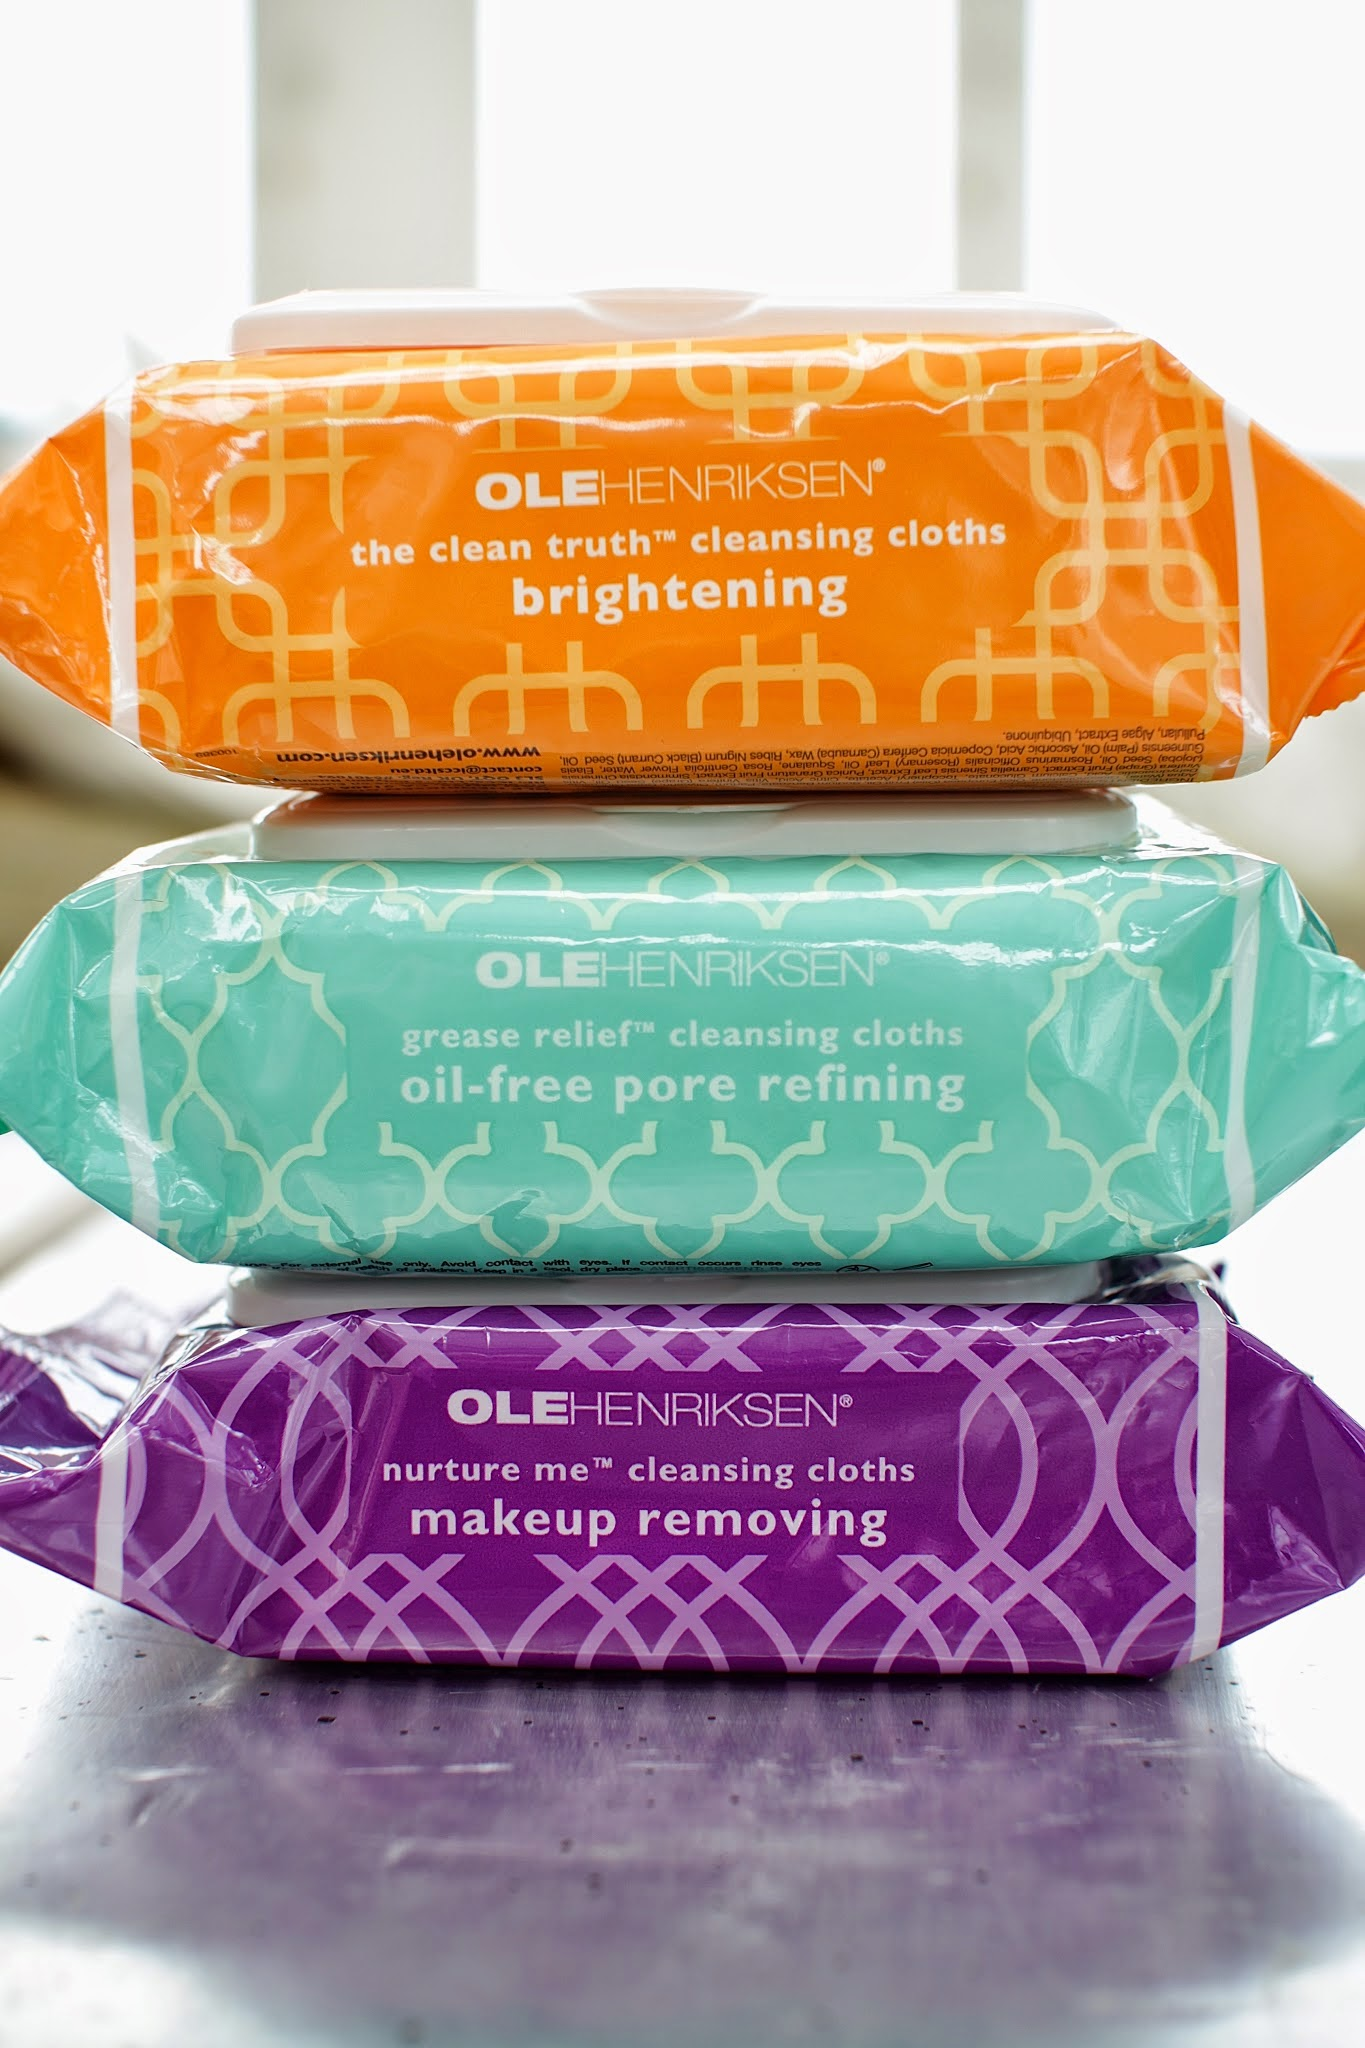 Ole Henriksen The Clean Truth Cleansing Cloths | 10 Best Makeup Removers for All Skin Types, check it out at http://makeuptutorials.com/makeup-removers-makeup-tutorials